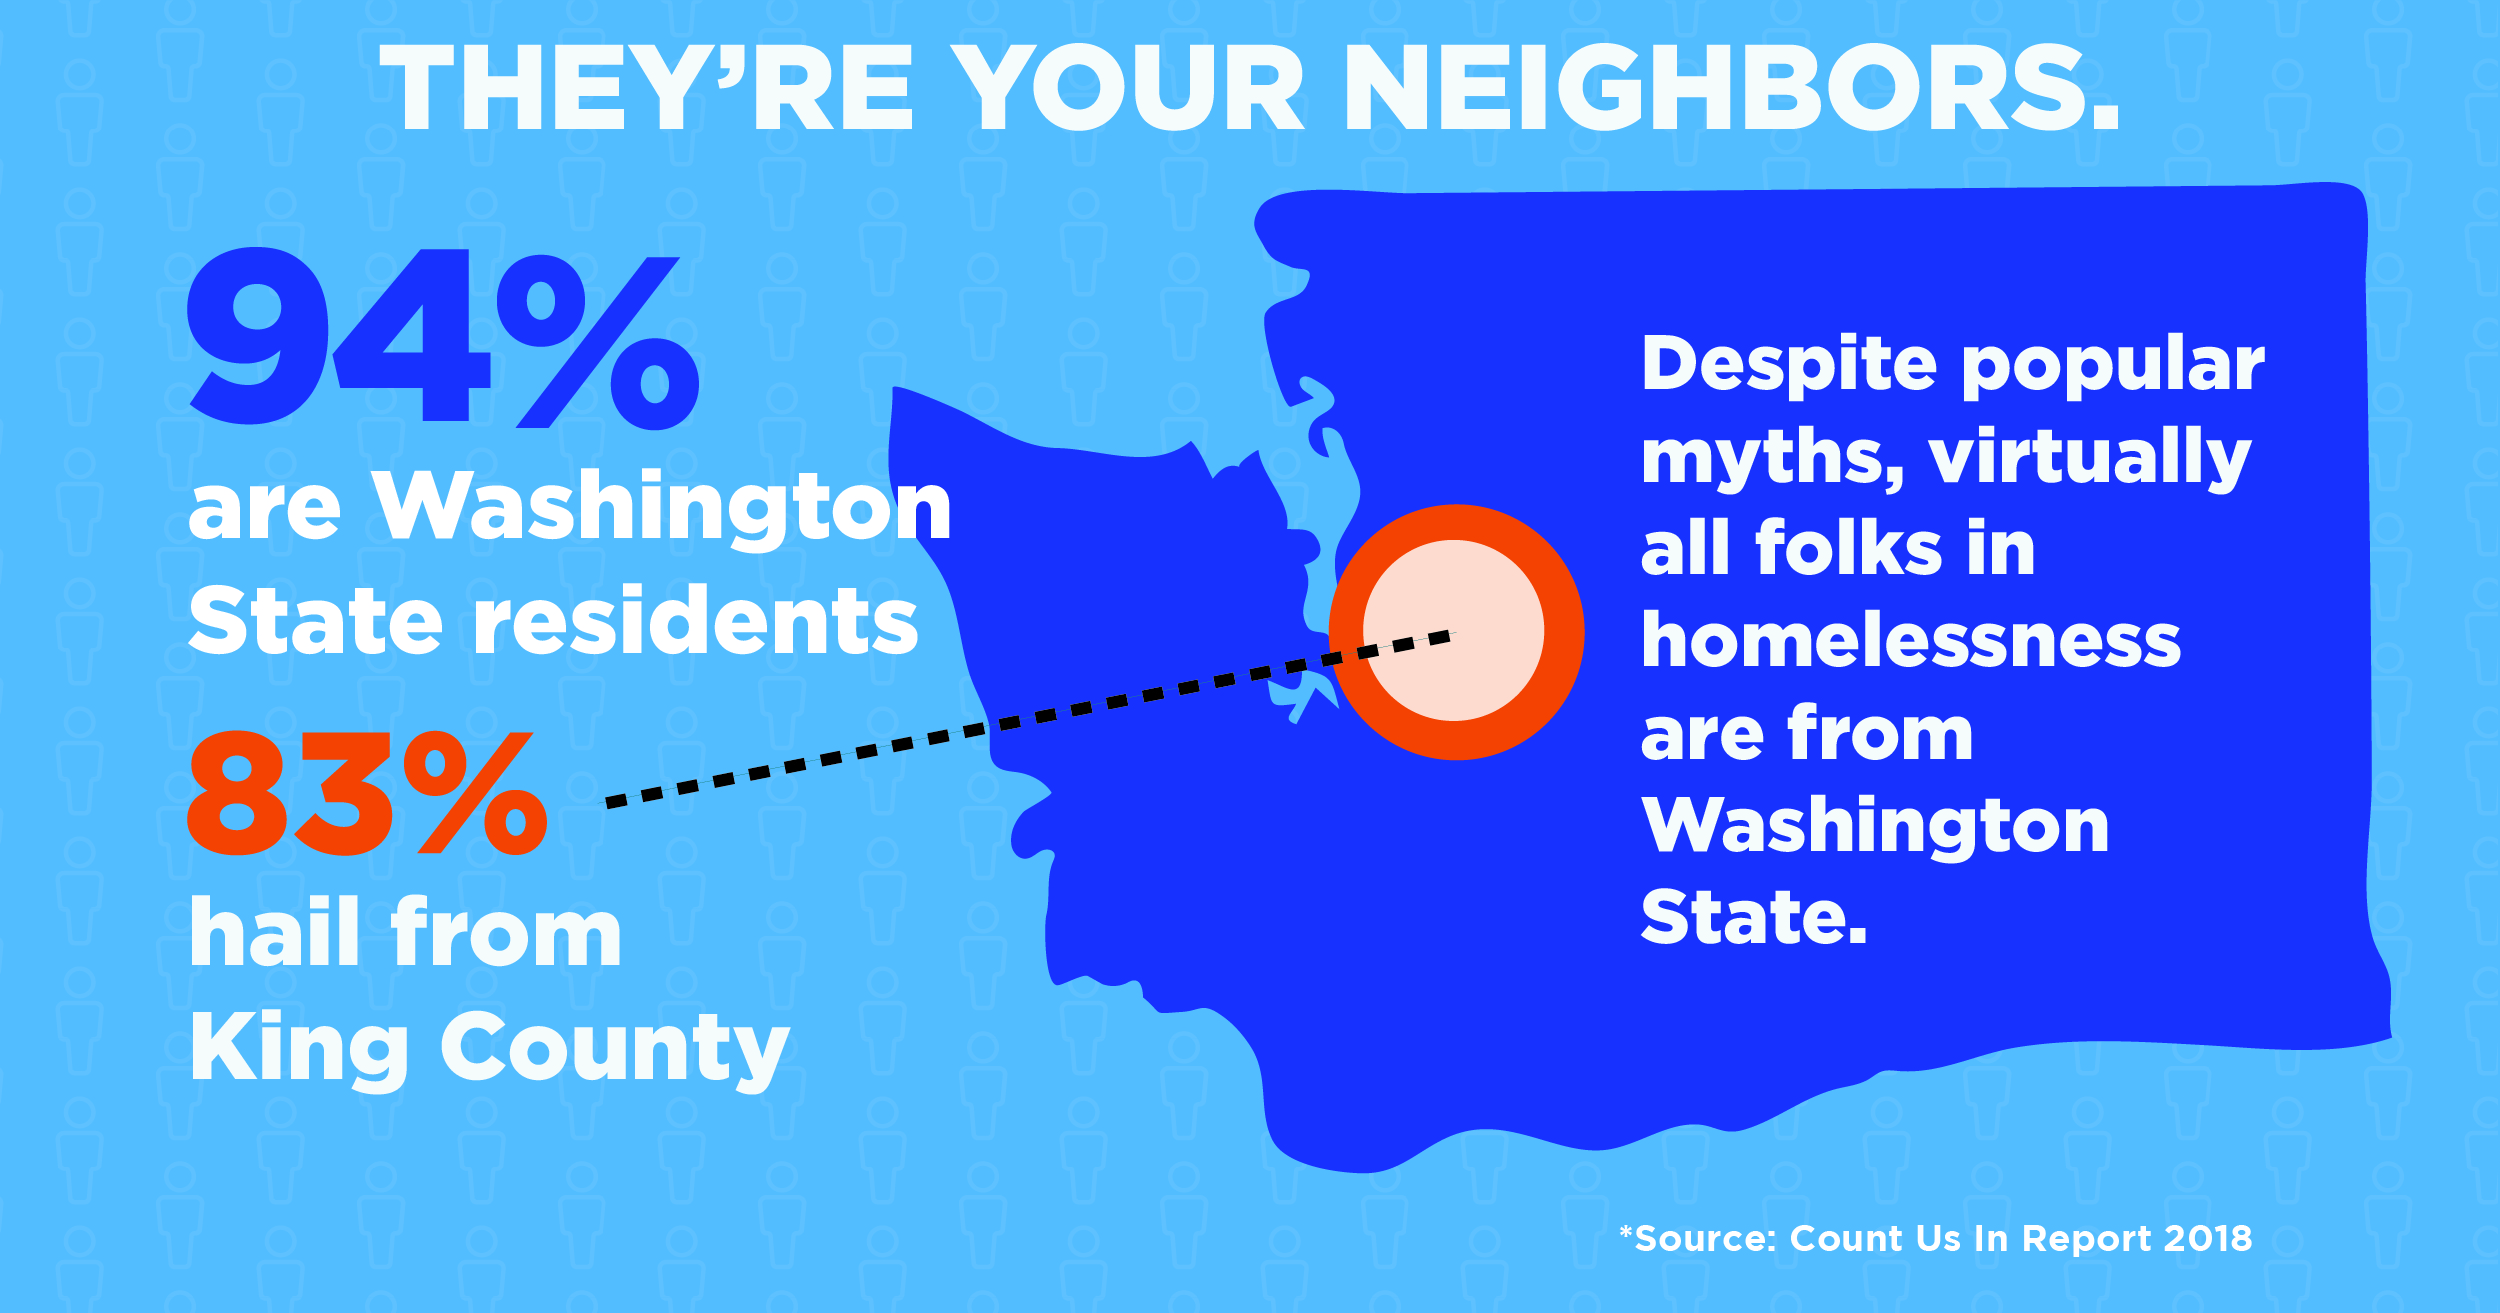 Homelessness begins at home, which is why almost every person experiencing homelessness in Washington state is from here.